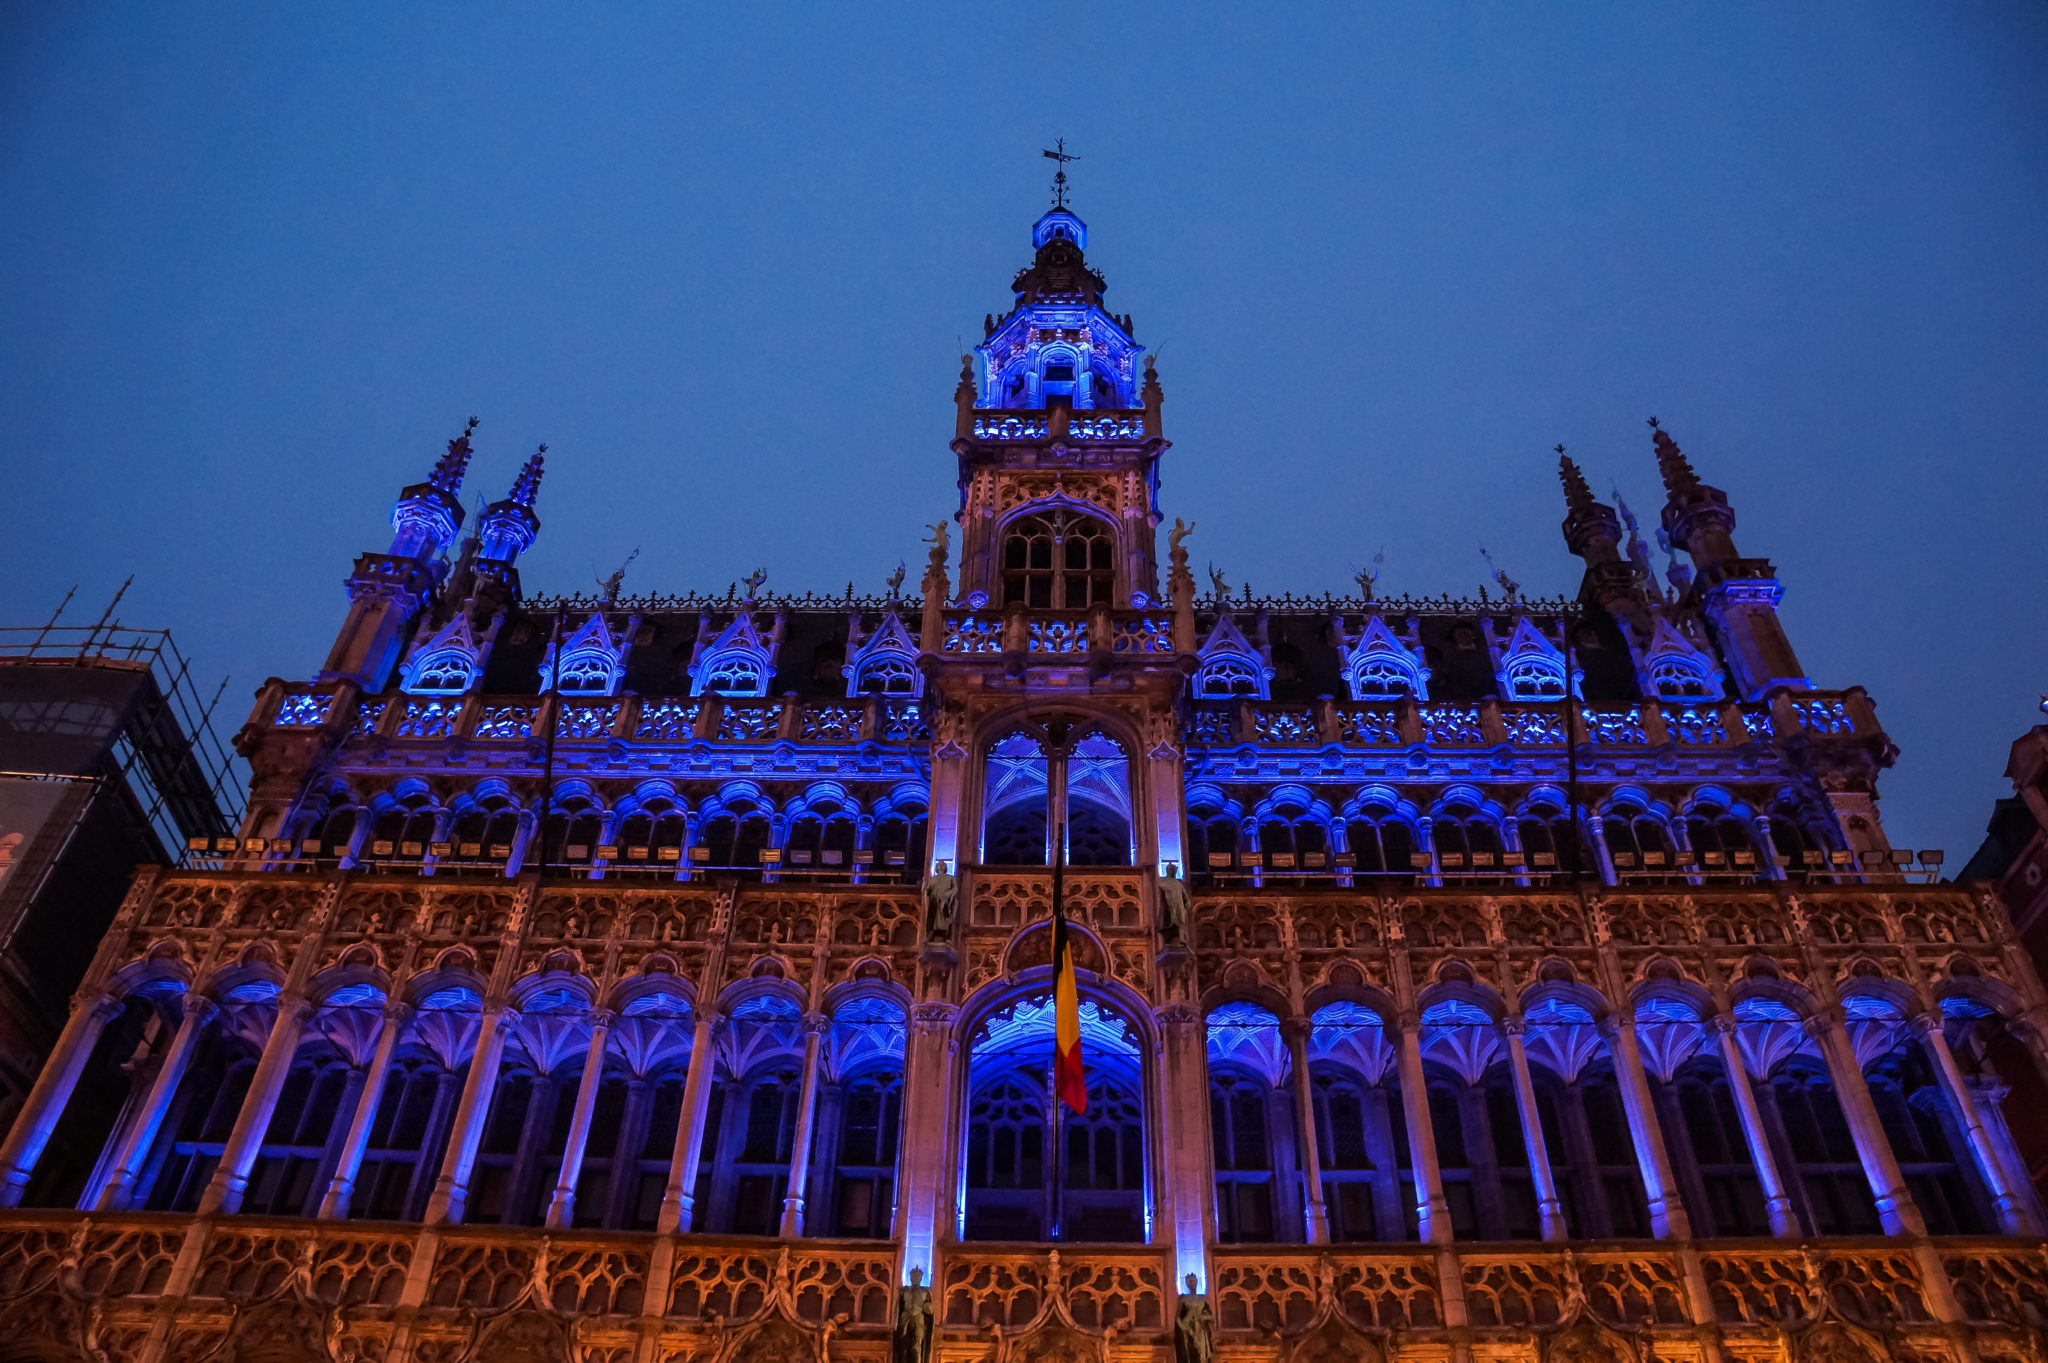 Hema_Bruxelles_Grande_Place_Musee_Nuit